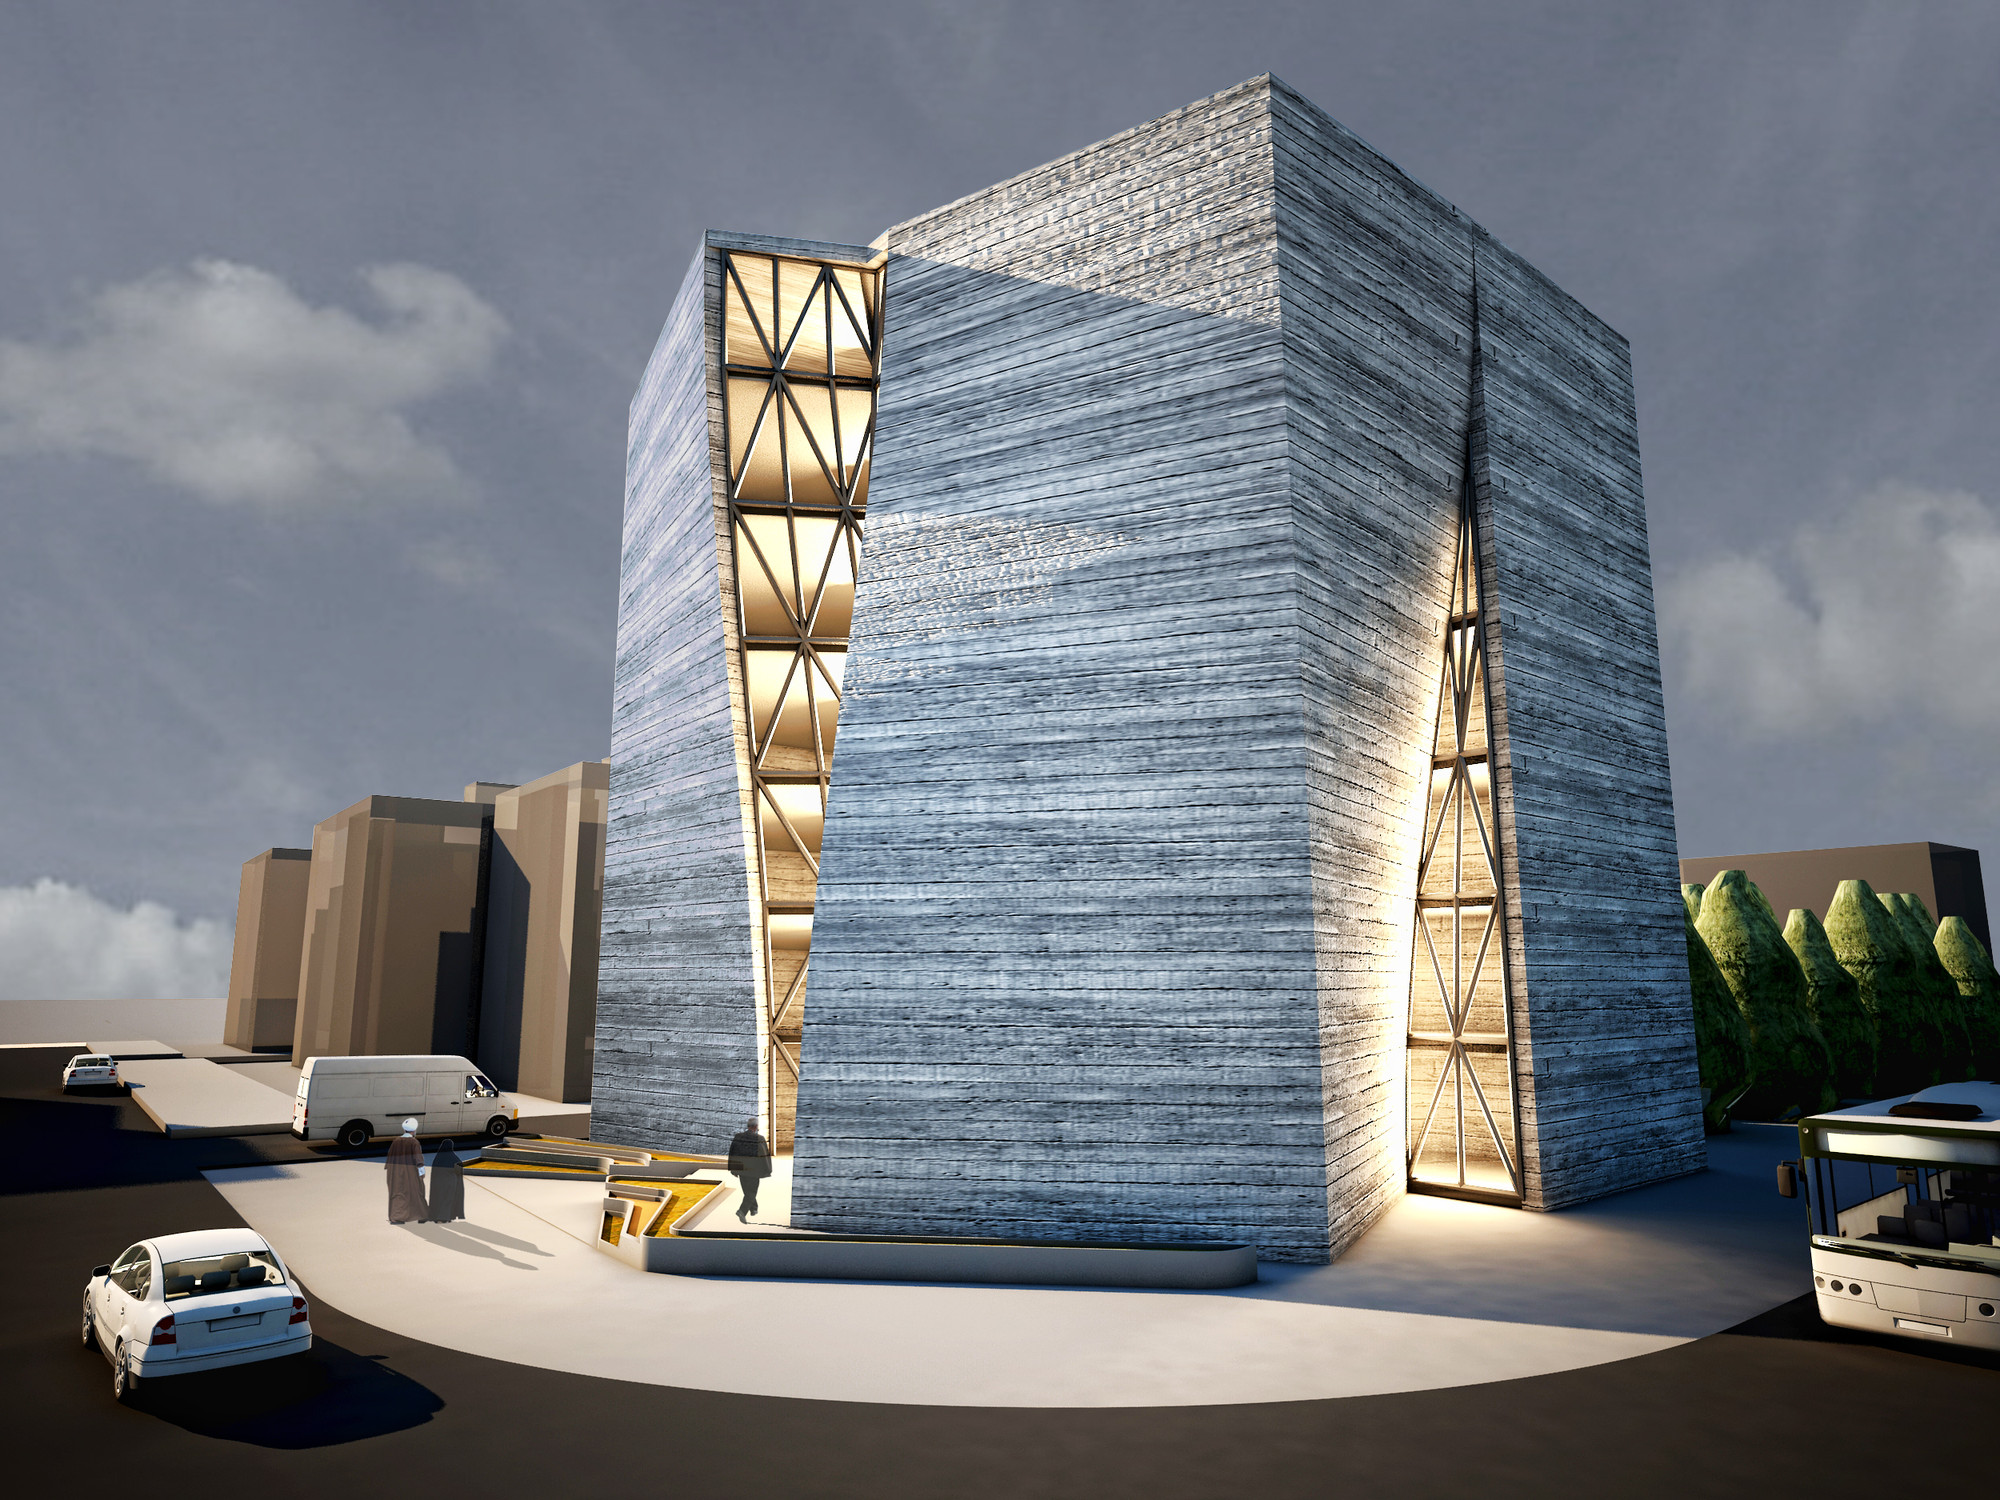 qom central building of construction engineering organization qom central building of construction engineering organization partar architecture studio courtesy of partar architecture